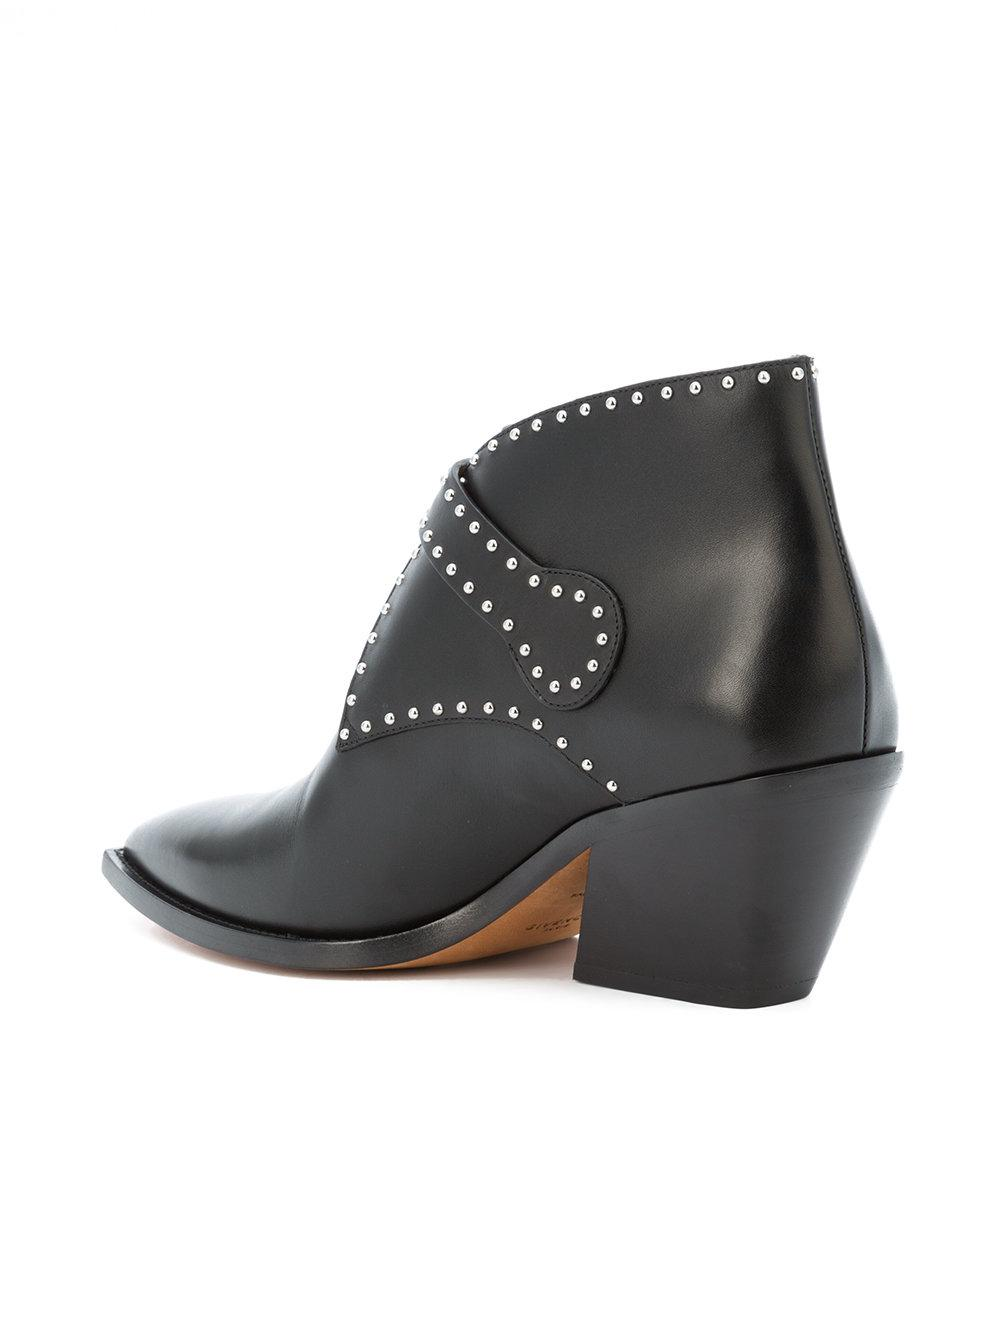 53a515328594 Lyst - Givenchy Black Elegant 60 Studded Leather Ankle Boots in Black -  Save 53%